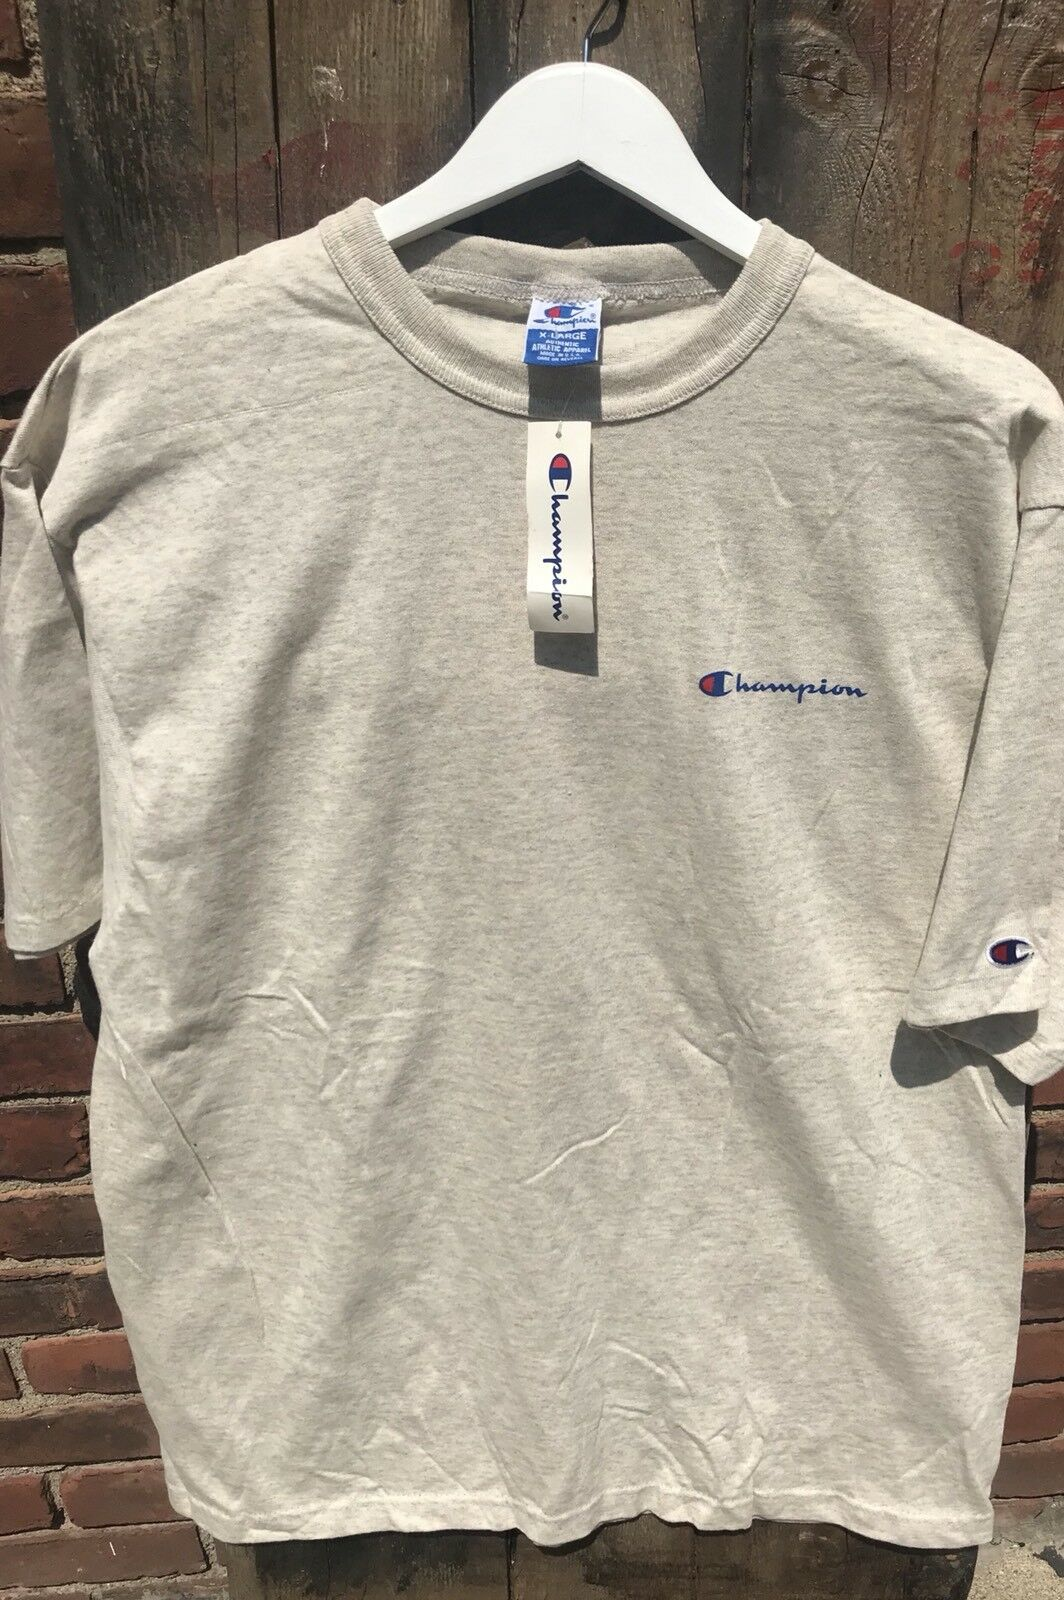 New XL Vintage 1990s Champion Oatmeal Script T Oversized Baggy Fit Shirt